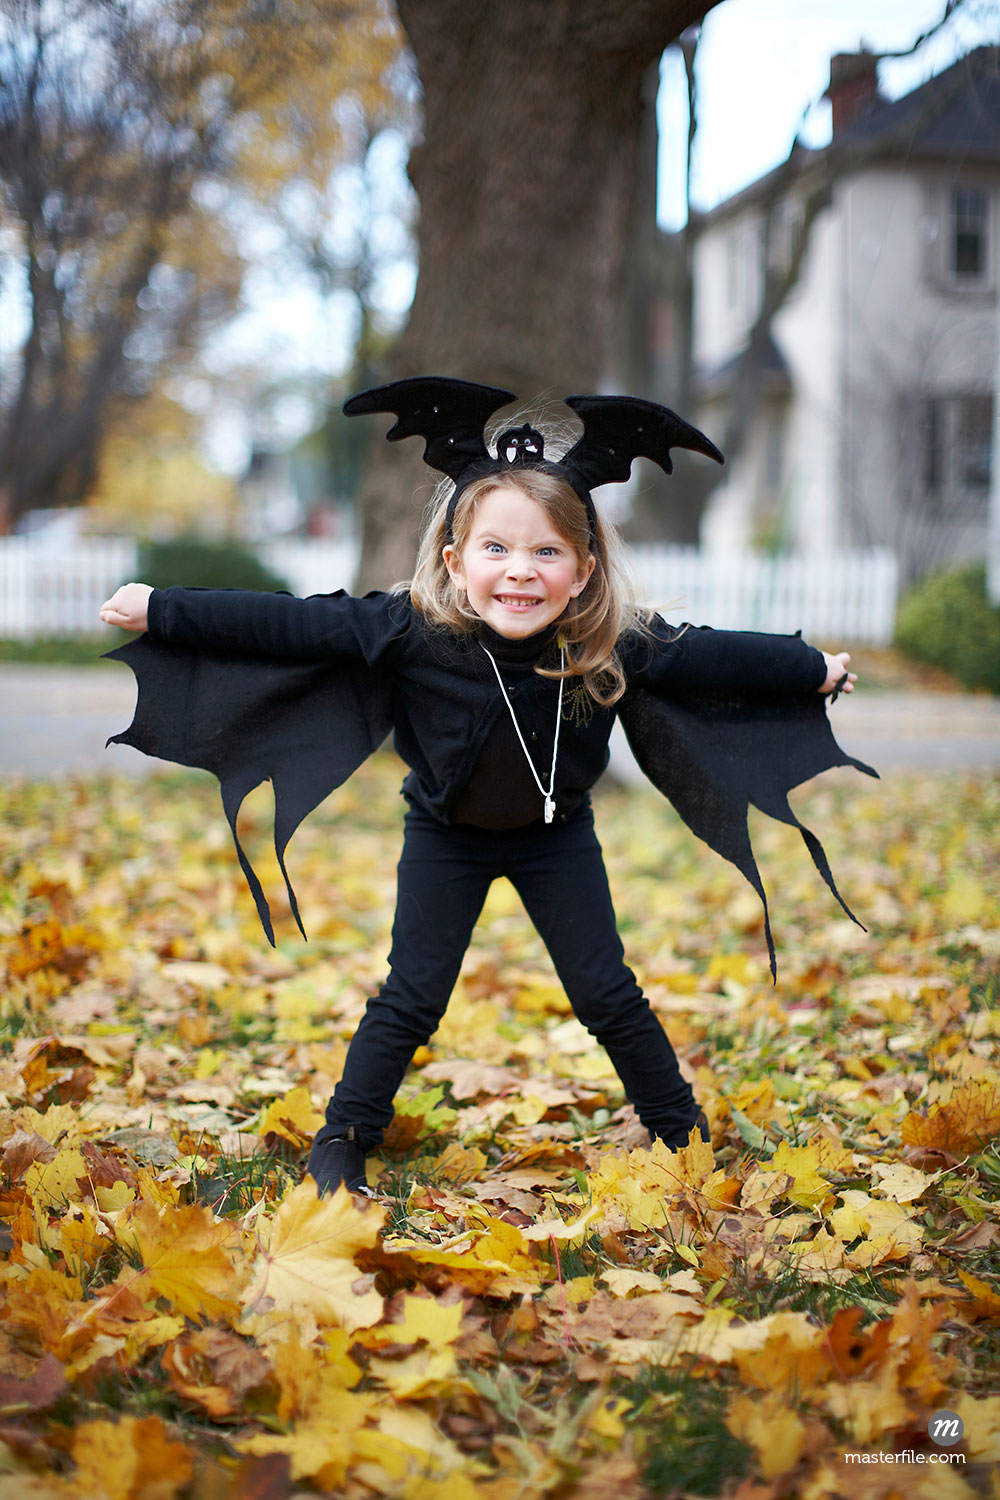 Girl in Bat Costume at Halloween in Toronto, Canada  ©  Michael Alberstat / Masterfile